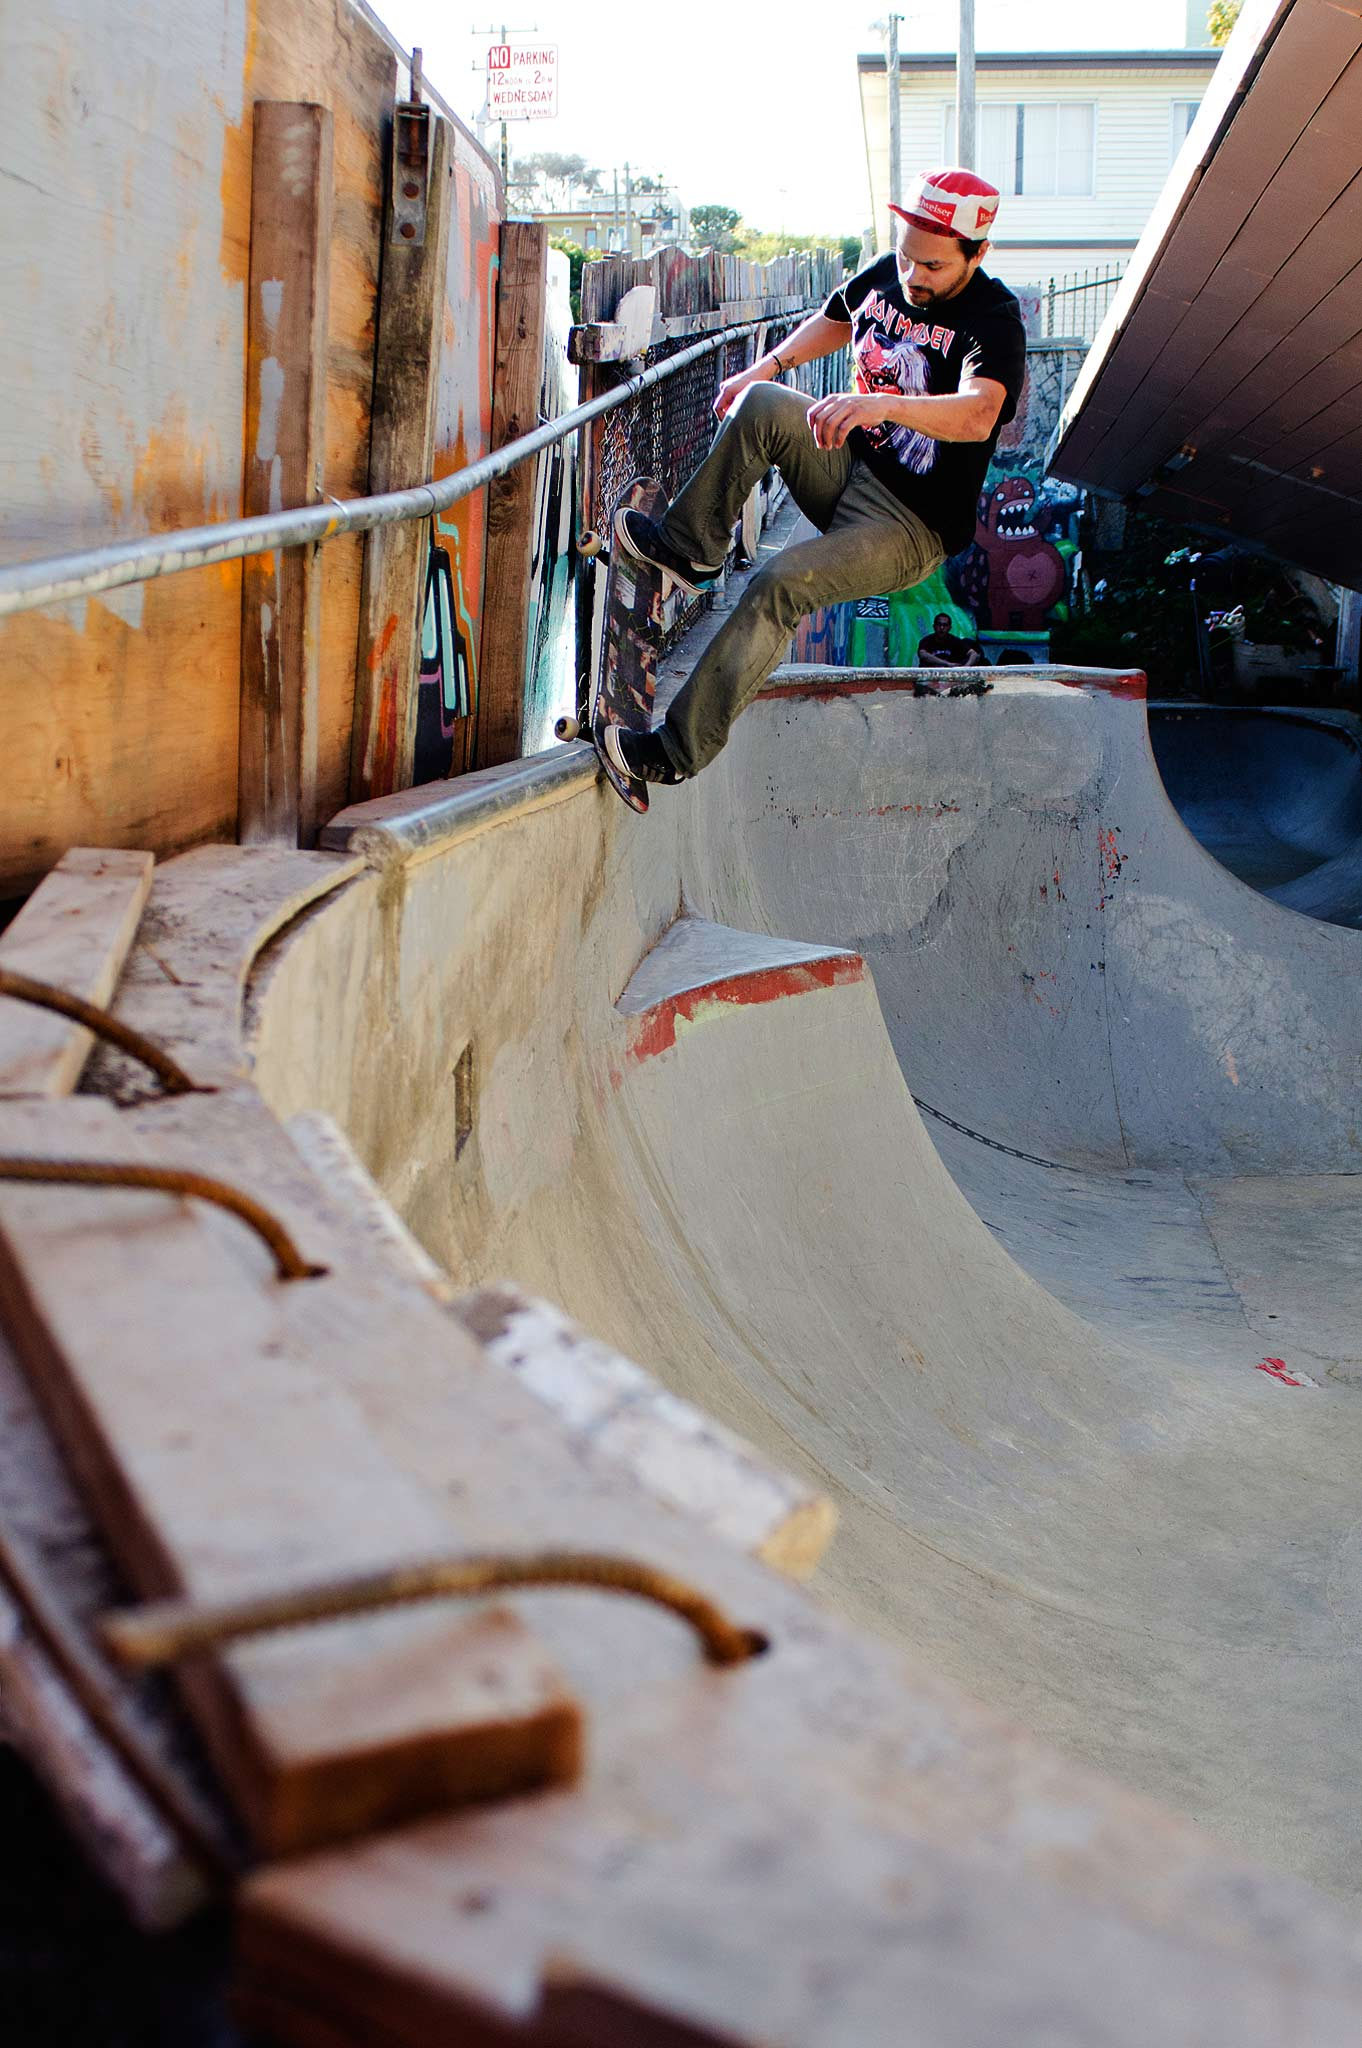 Adrian Mallory, frontside nose grind